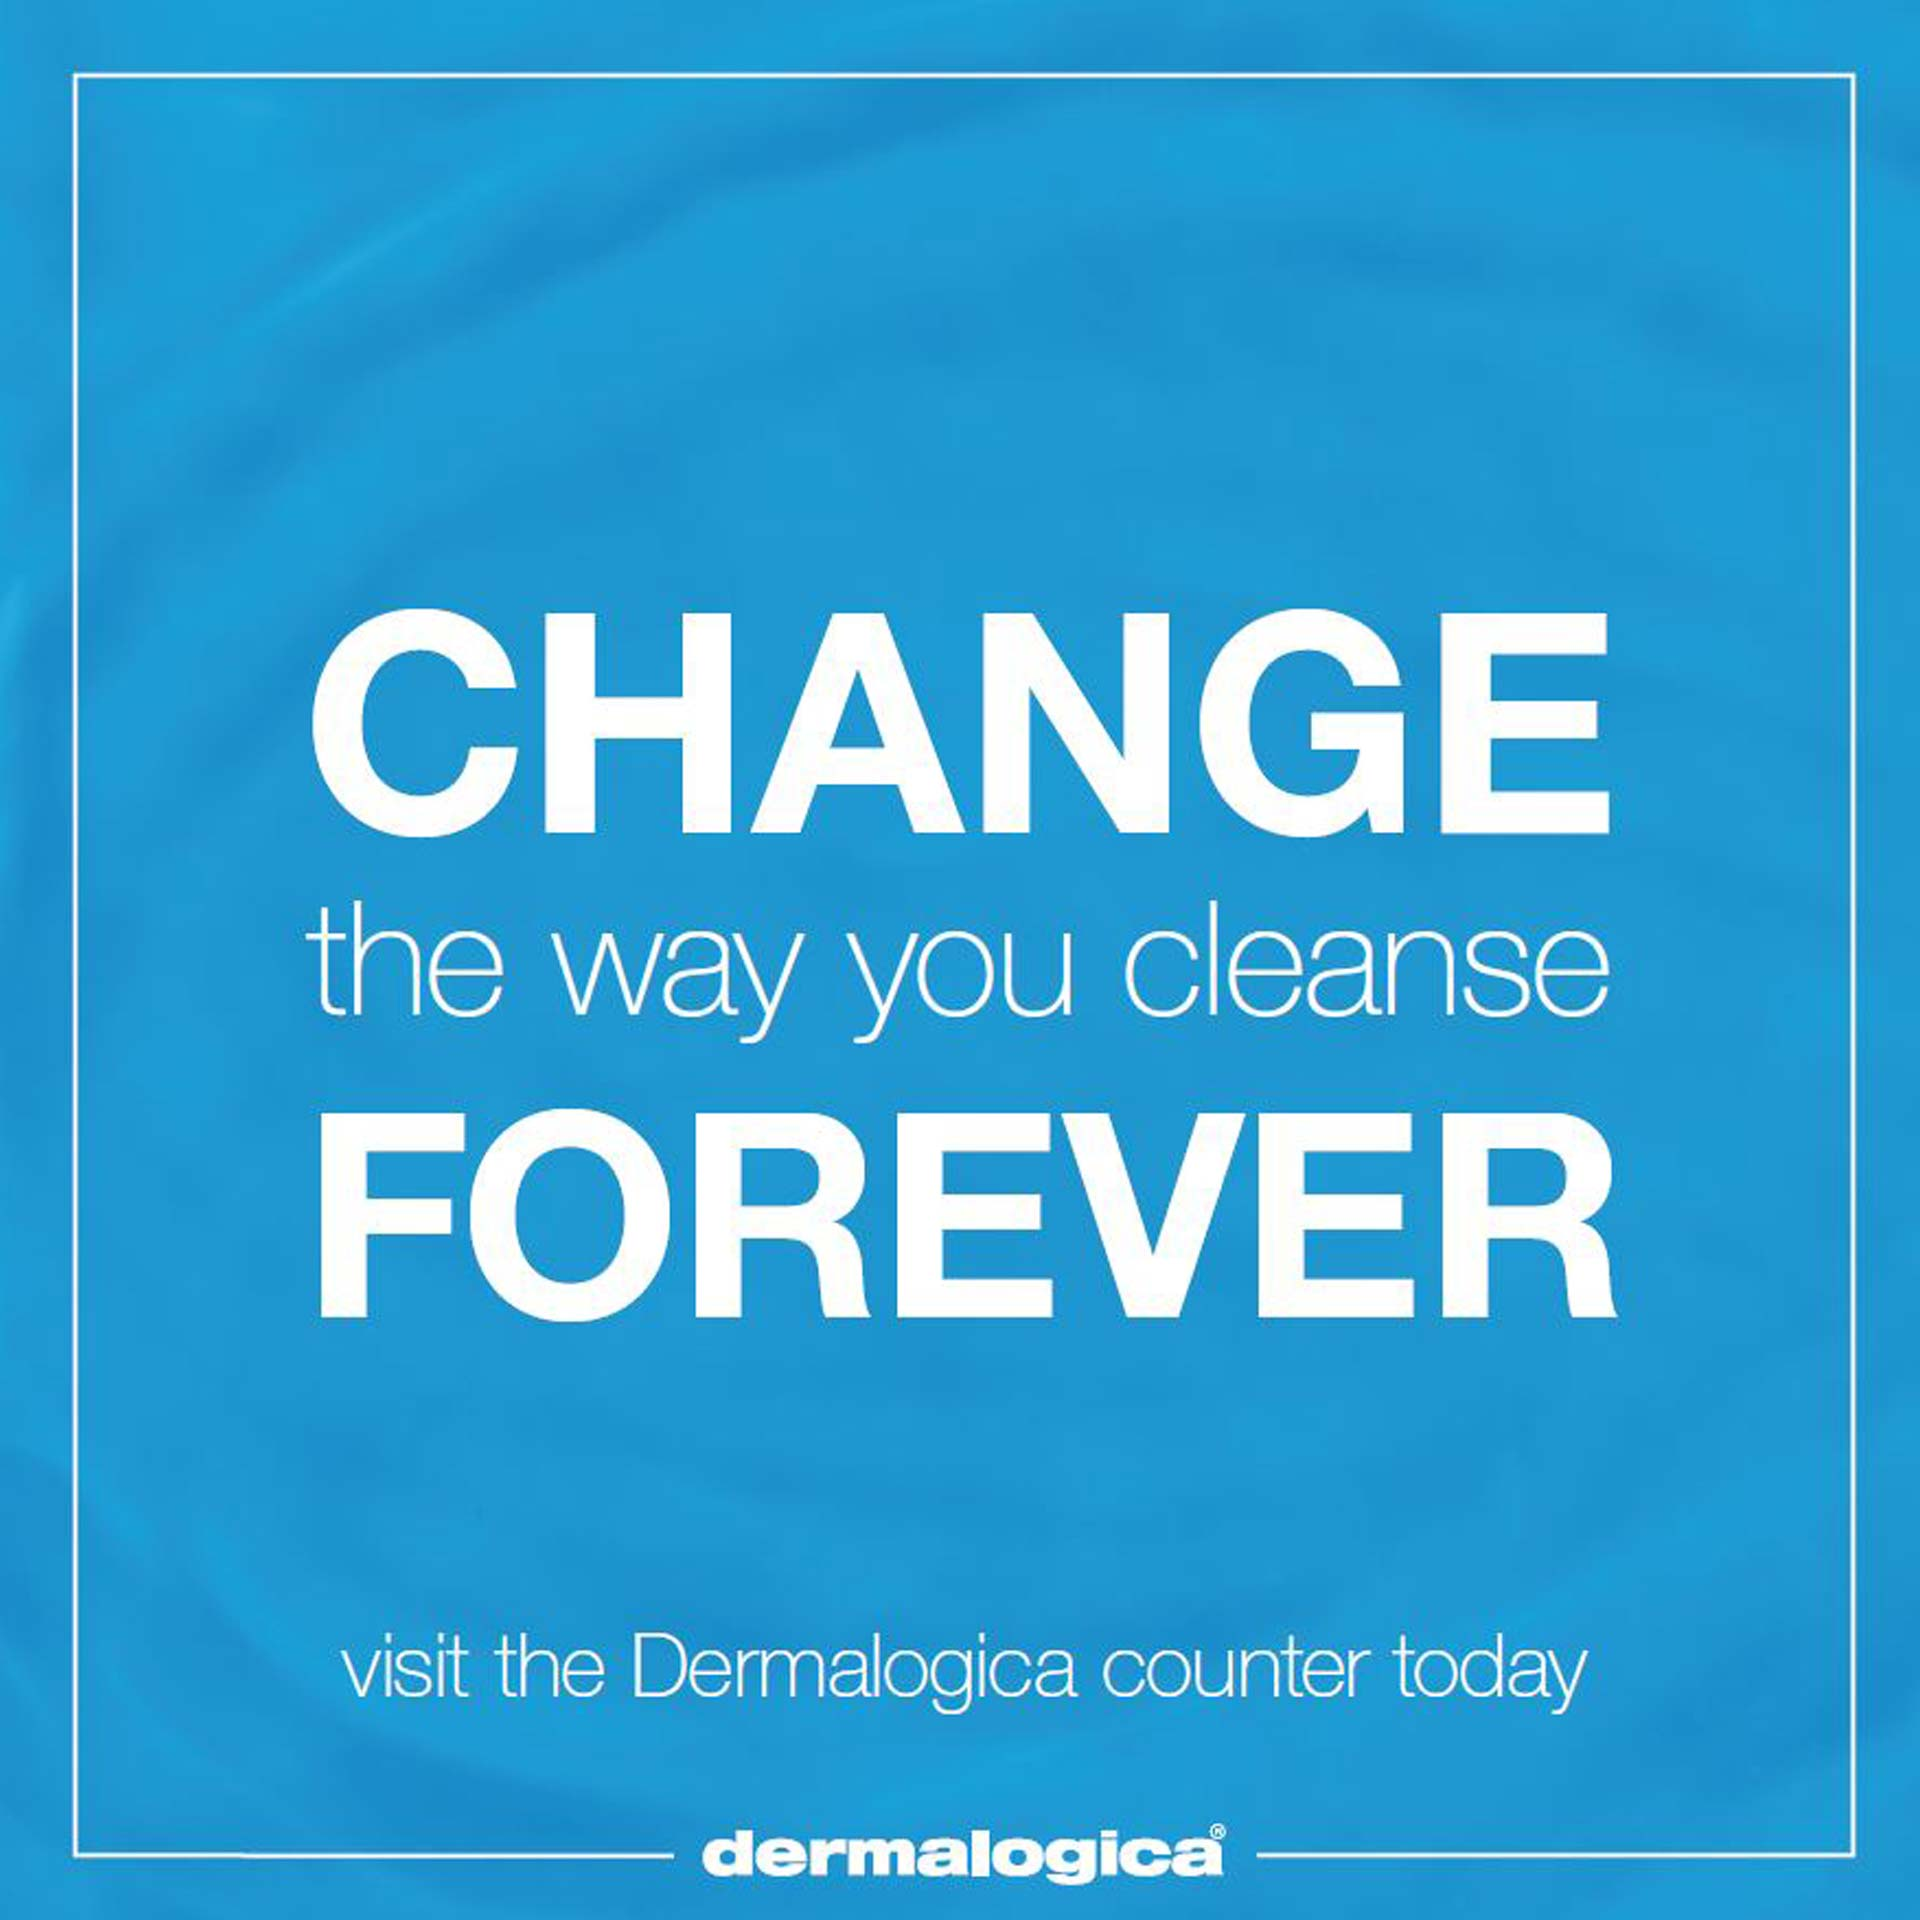 Change the way you cleanse forever